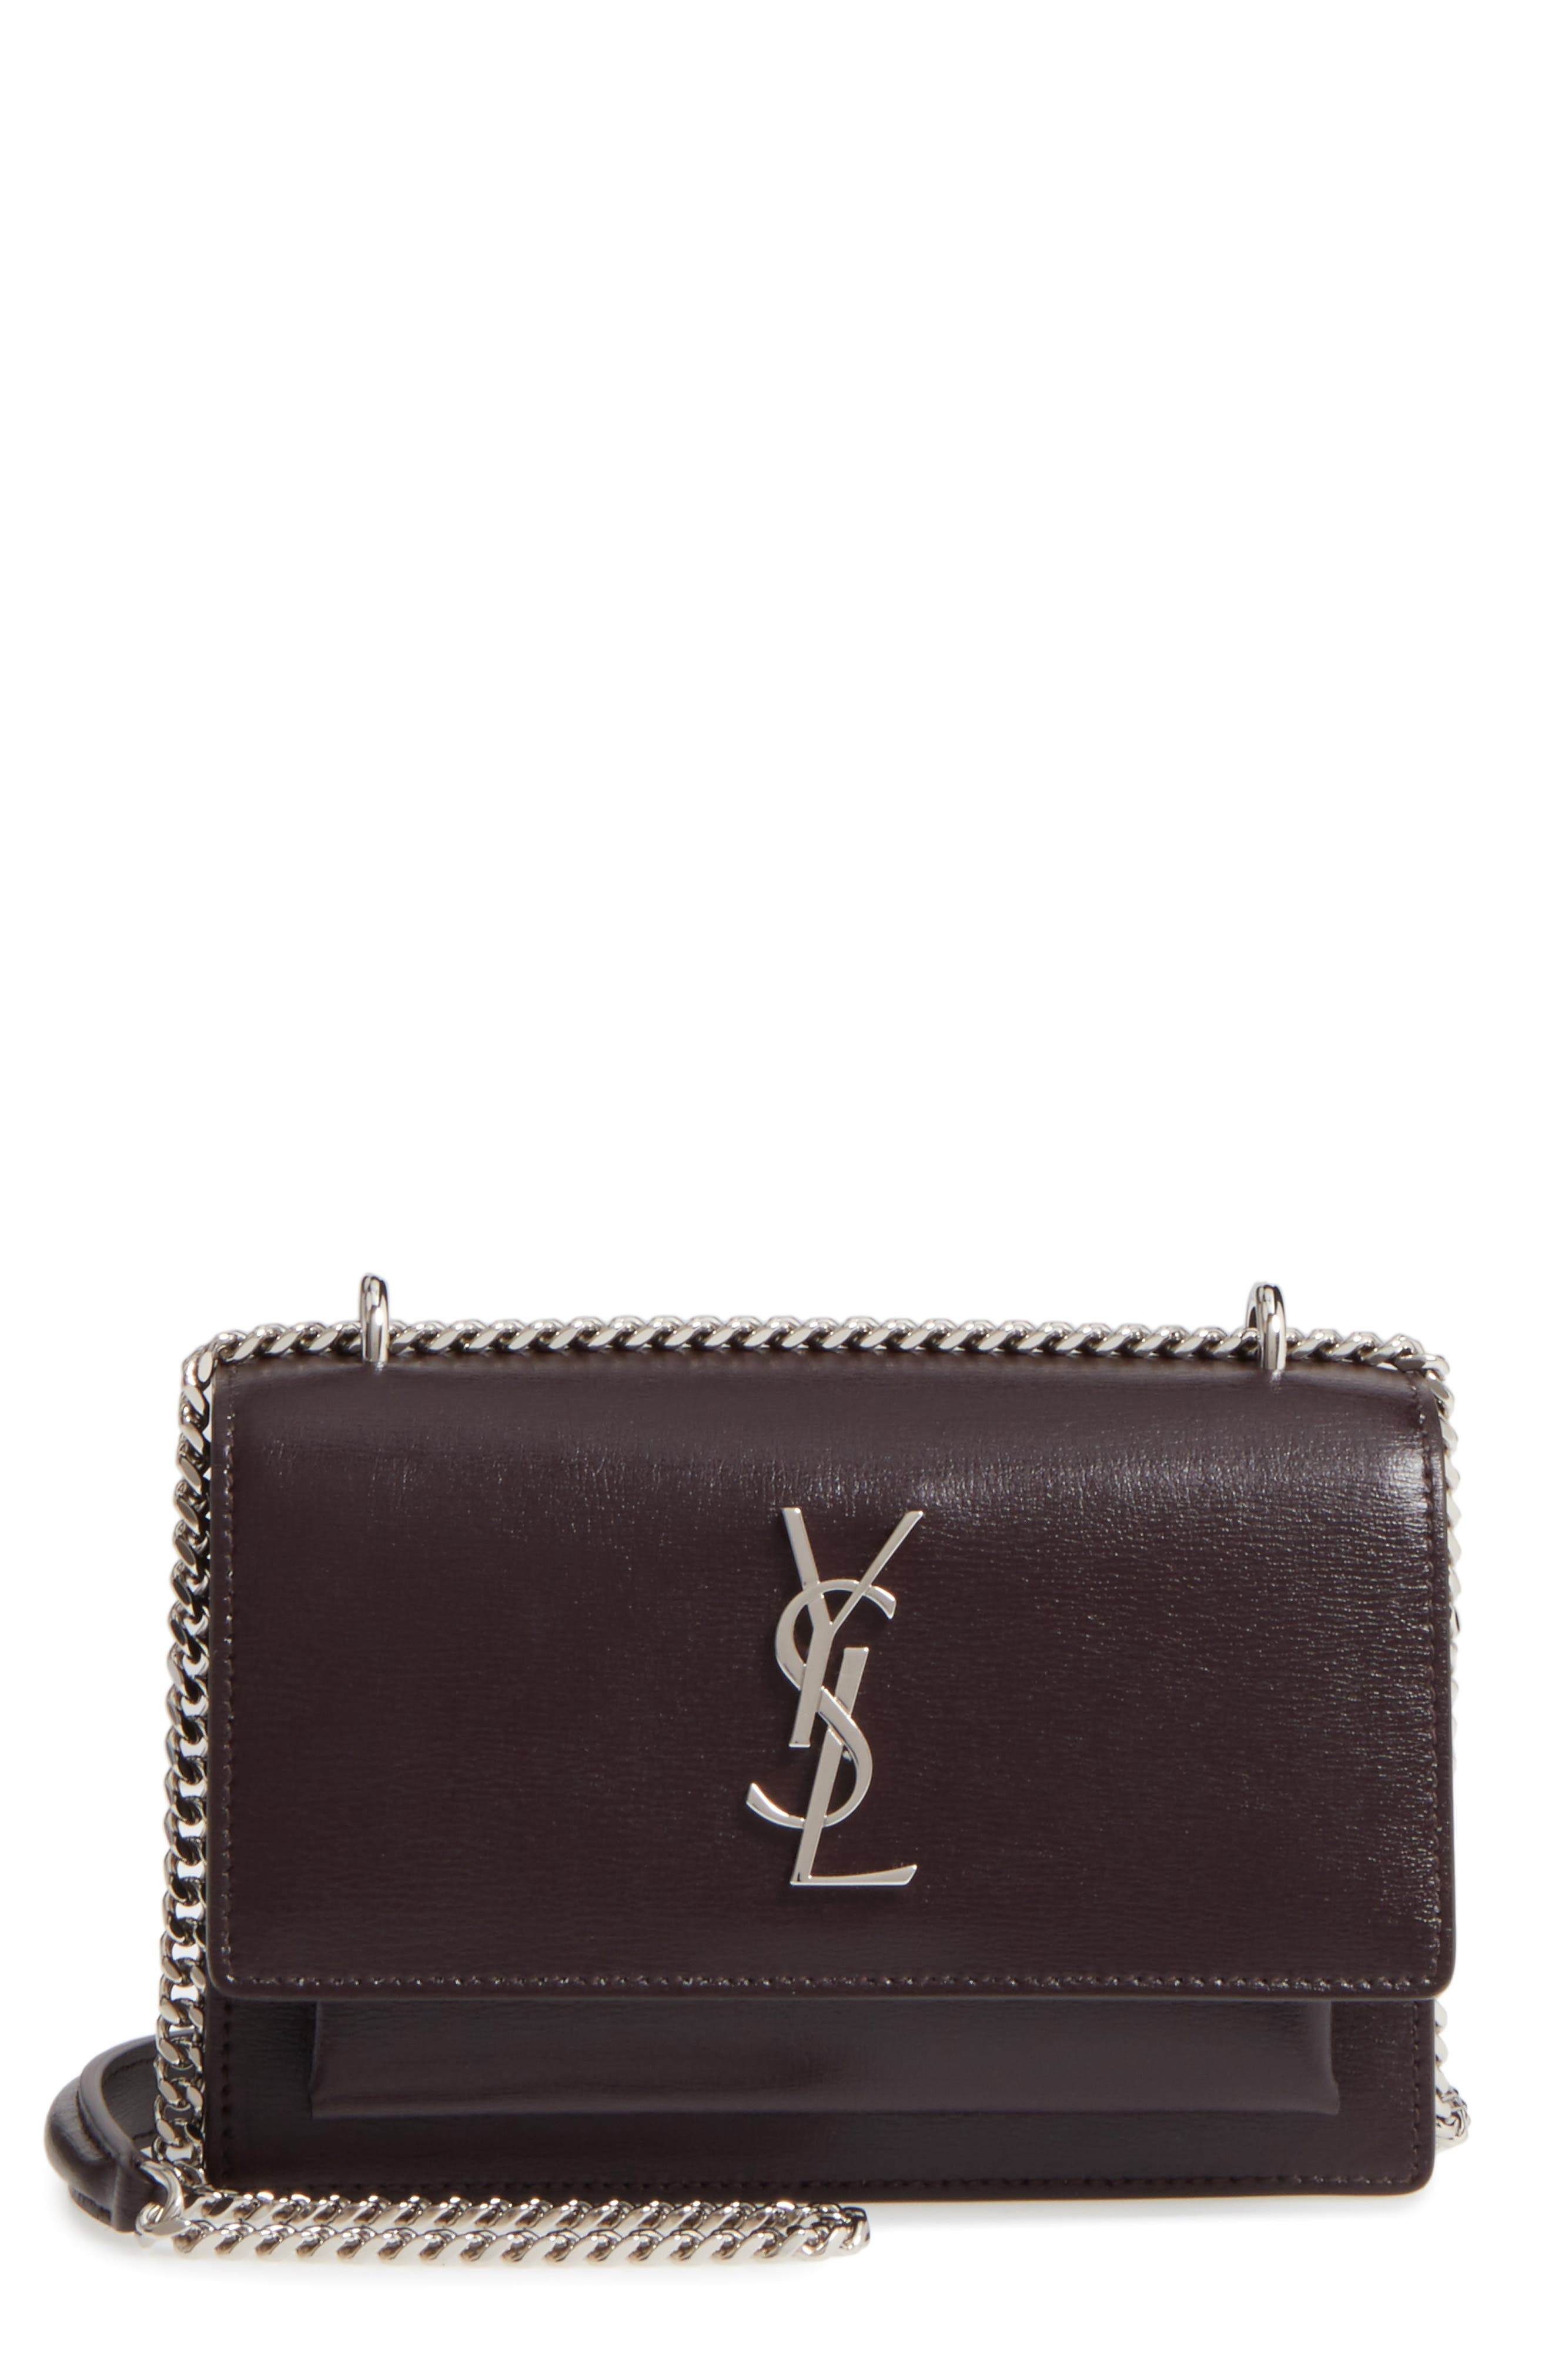 Main Image - Saint Laurent Sunset Leather Wallet on a Chain